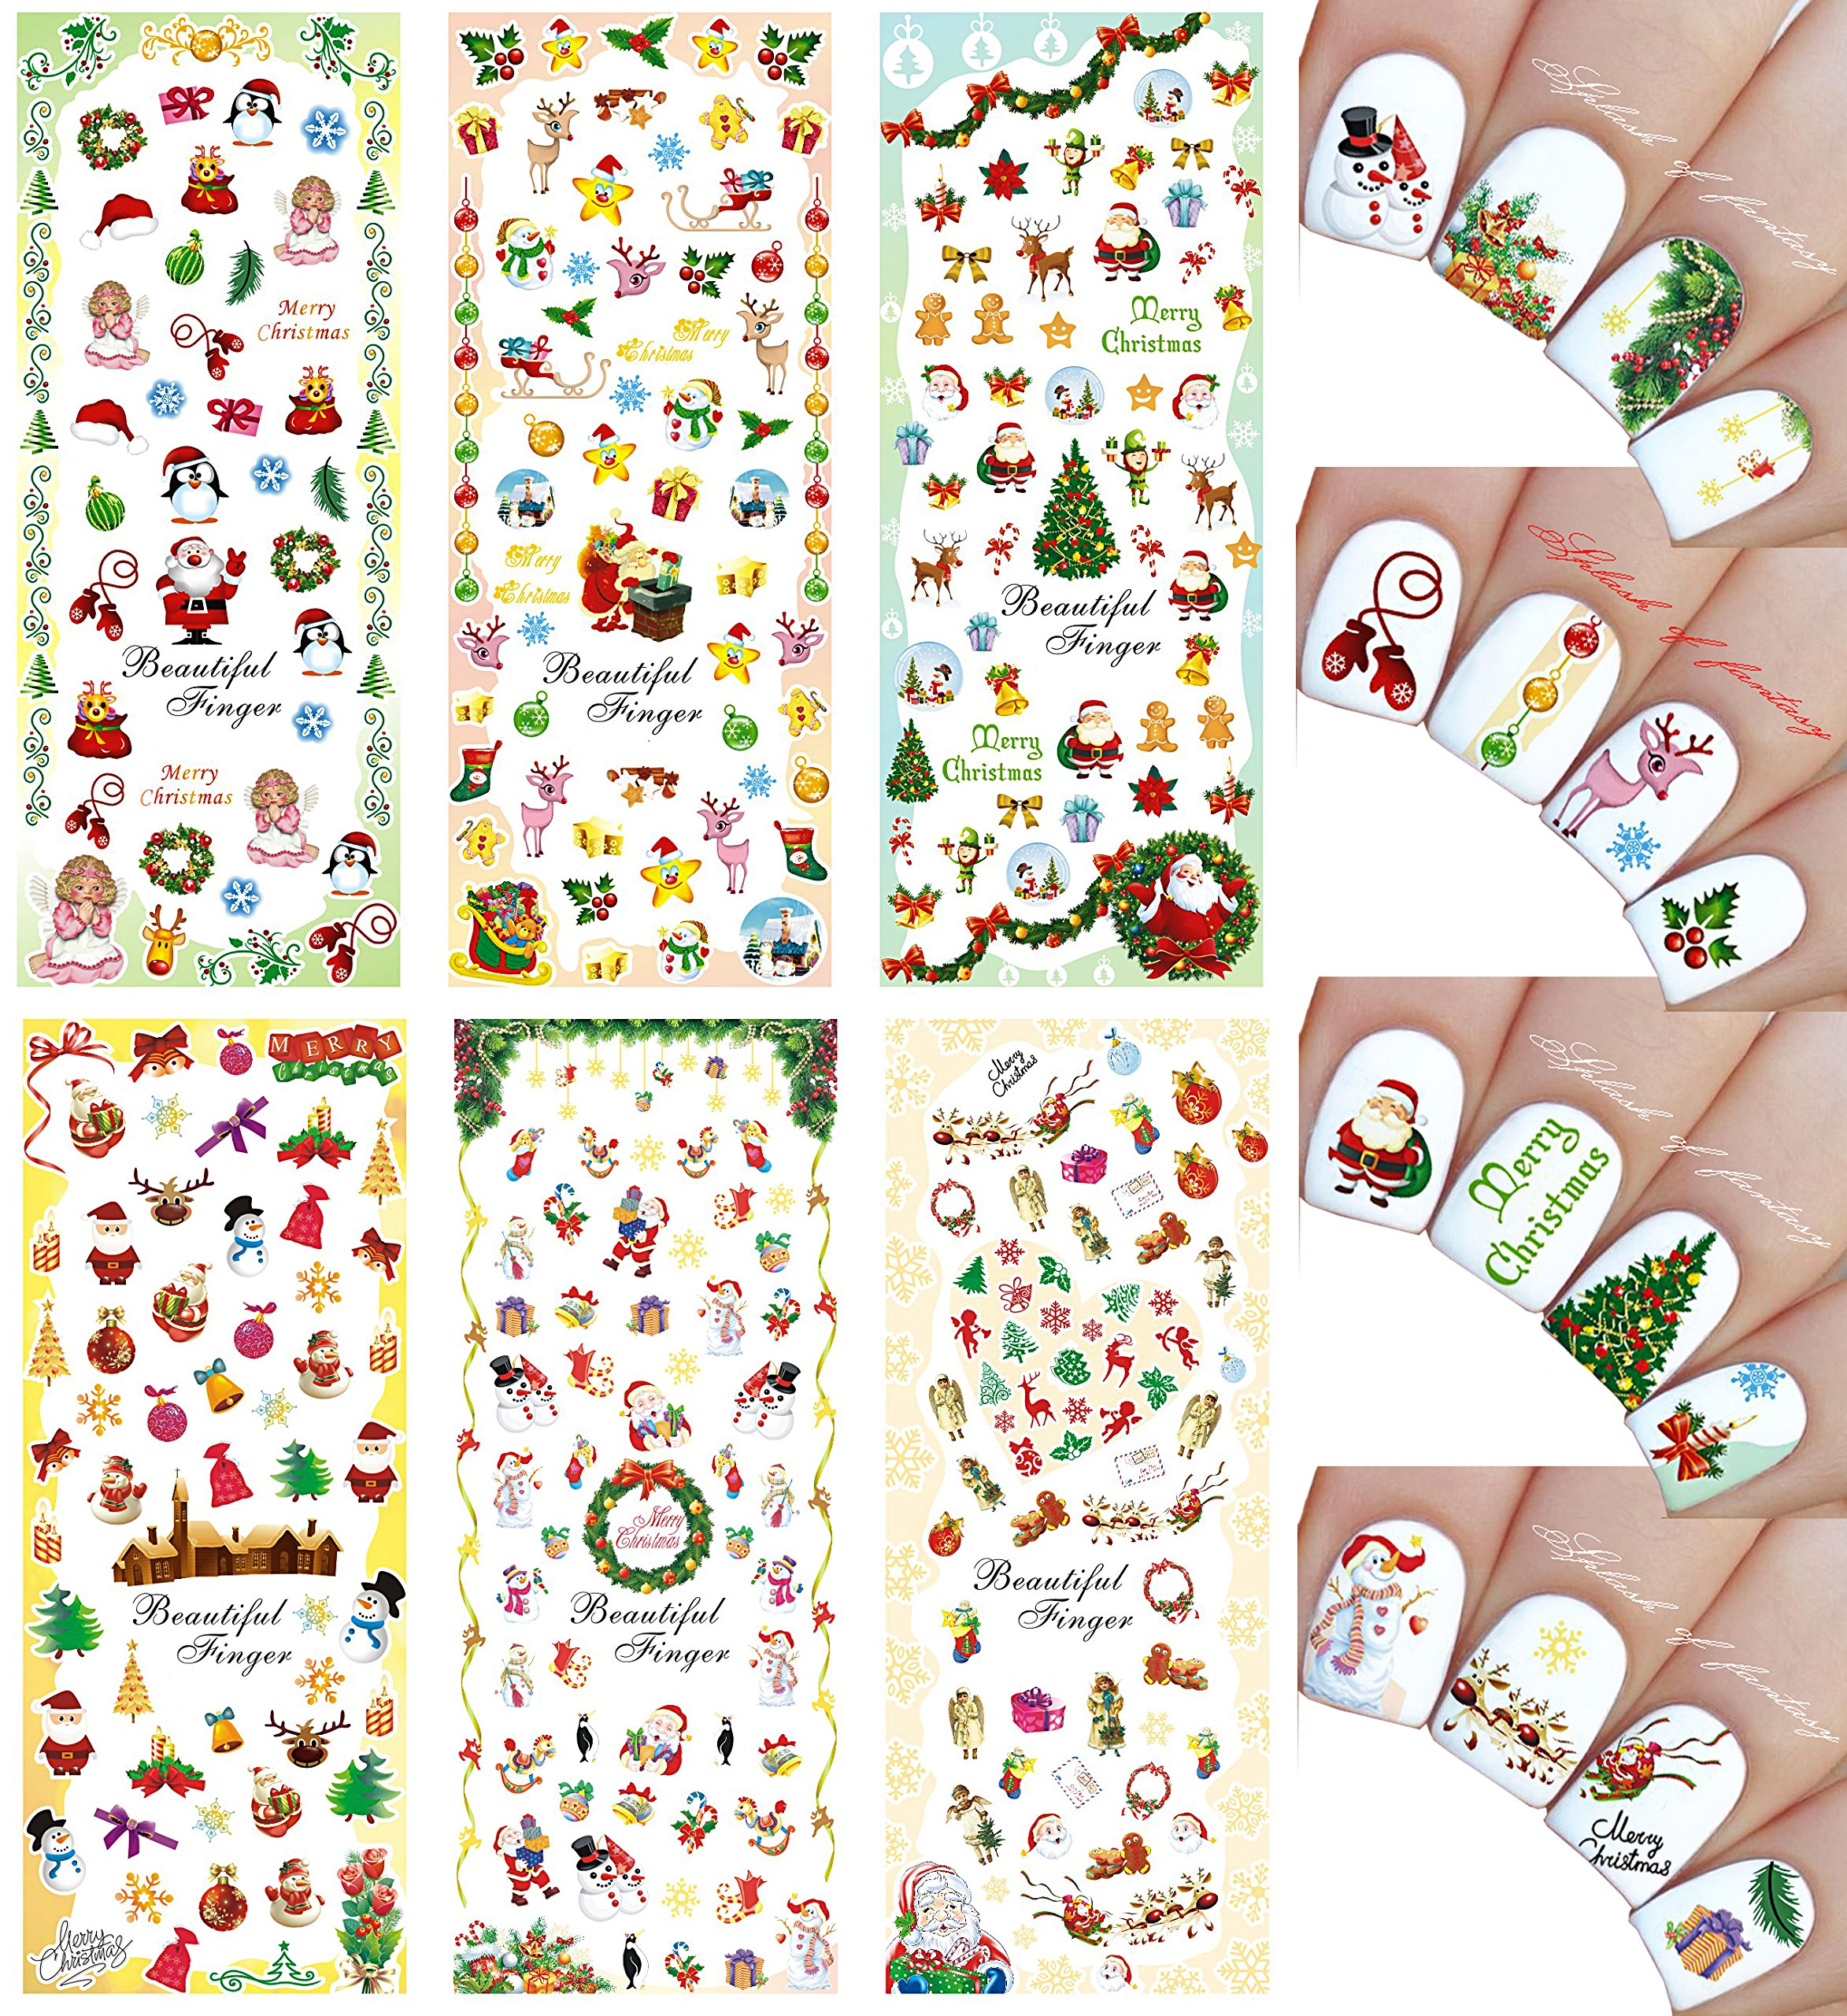 Christmas New Year Theme Nail Art Decal Water Slide Tattoo Transfer - Santa, Reindeer, Snowflakes & Many More - Pack of 6 by La Demoiselle